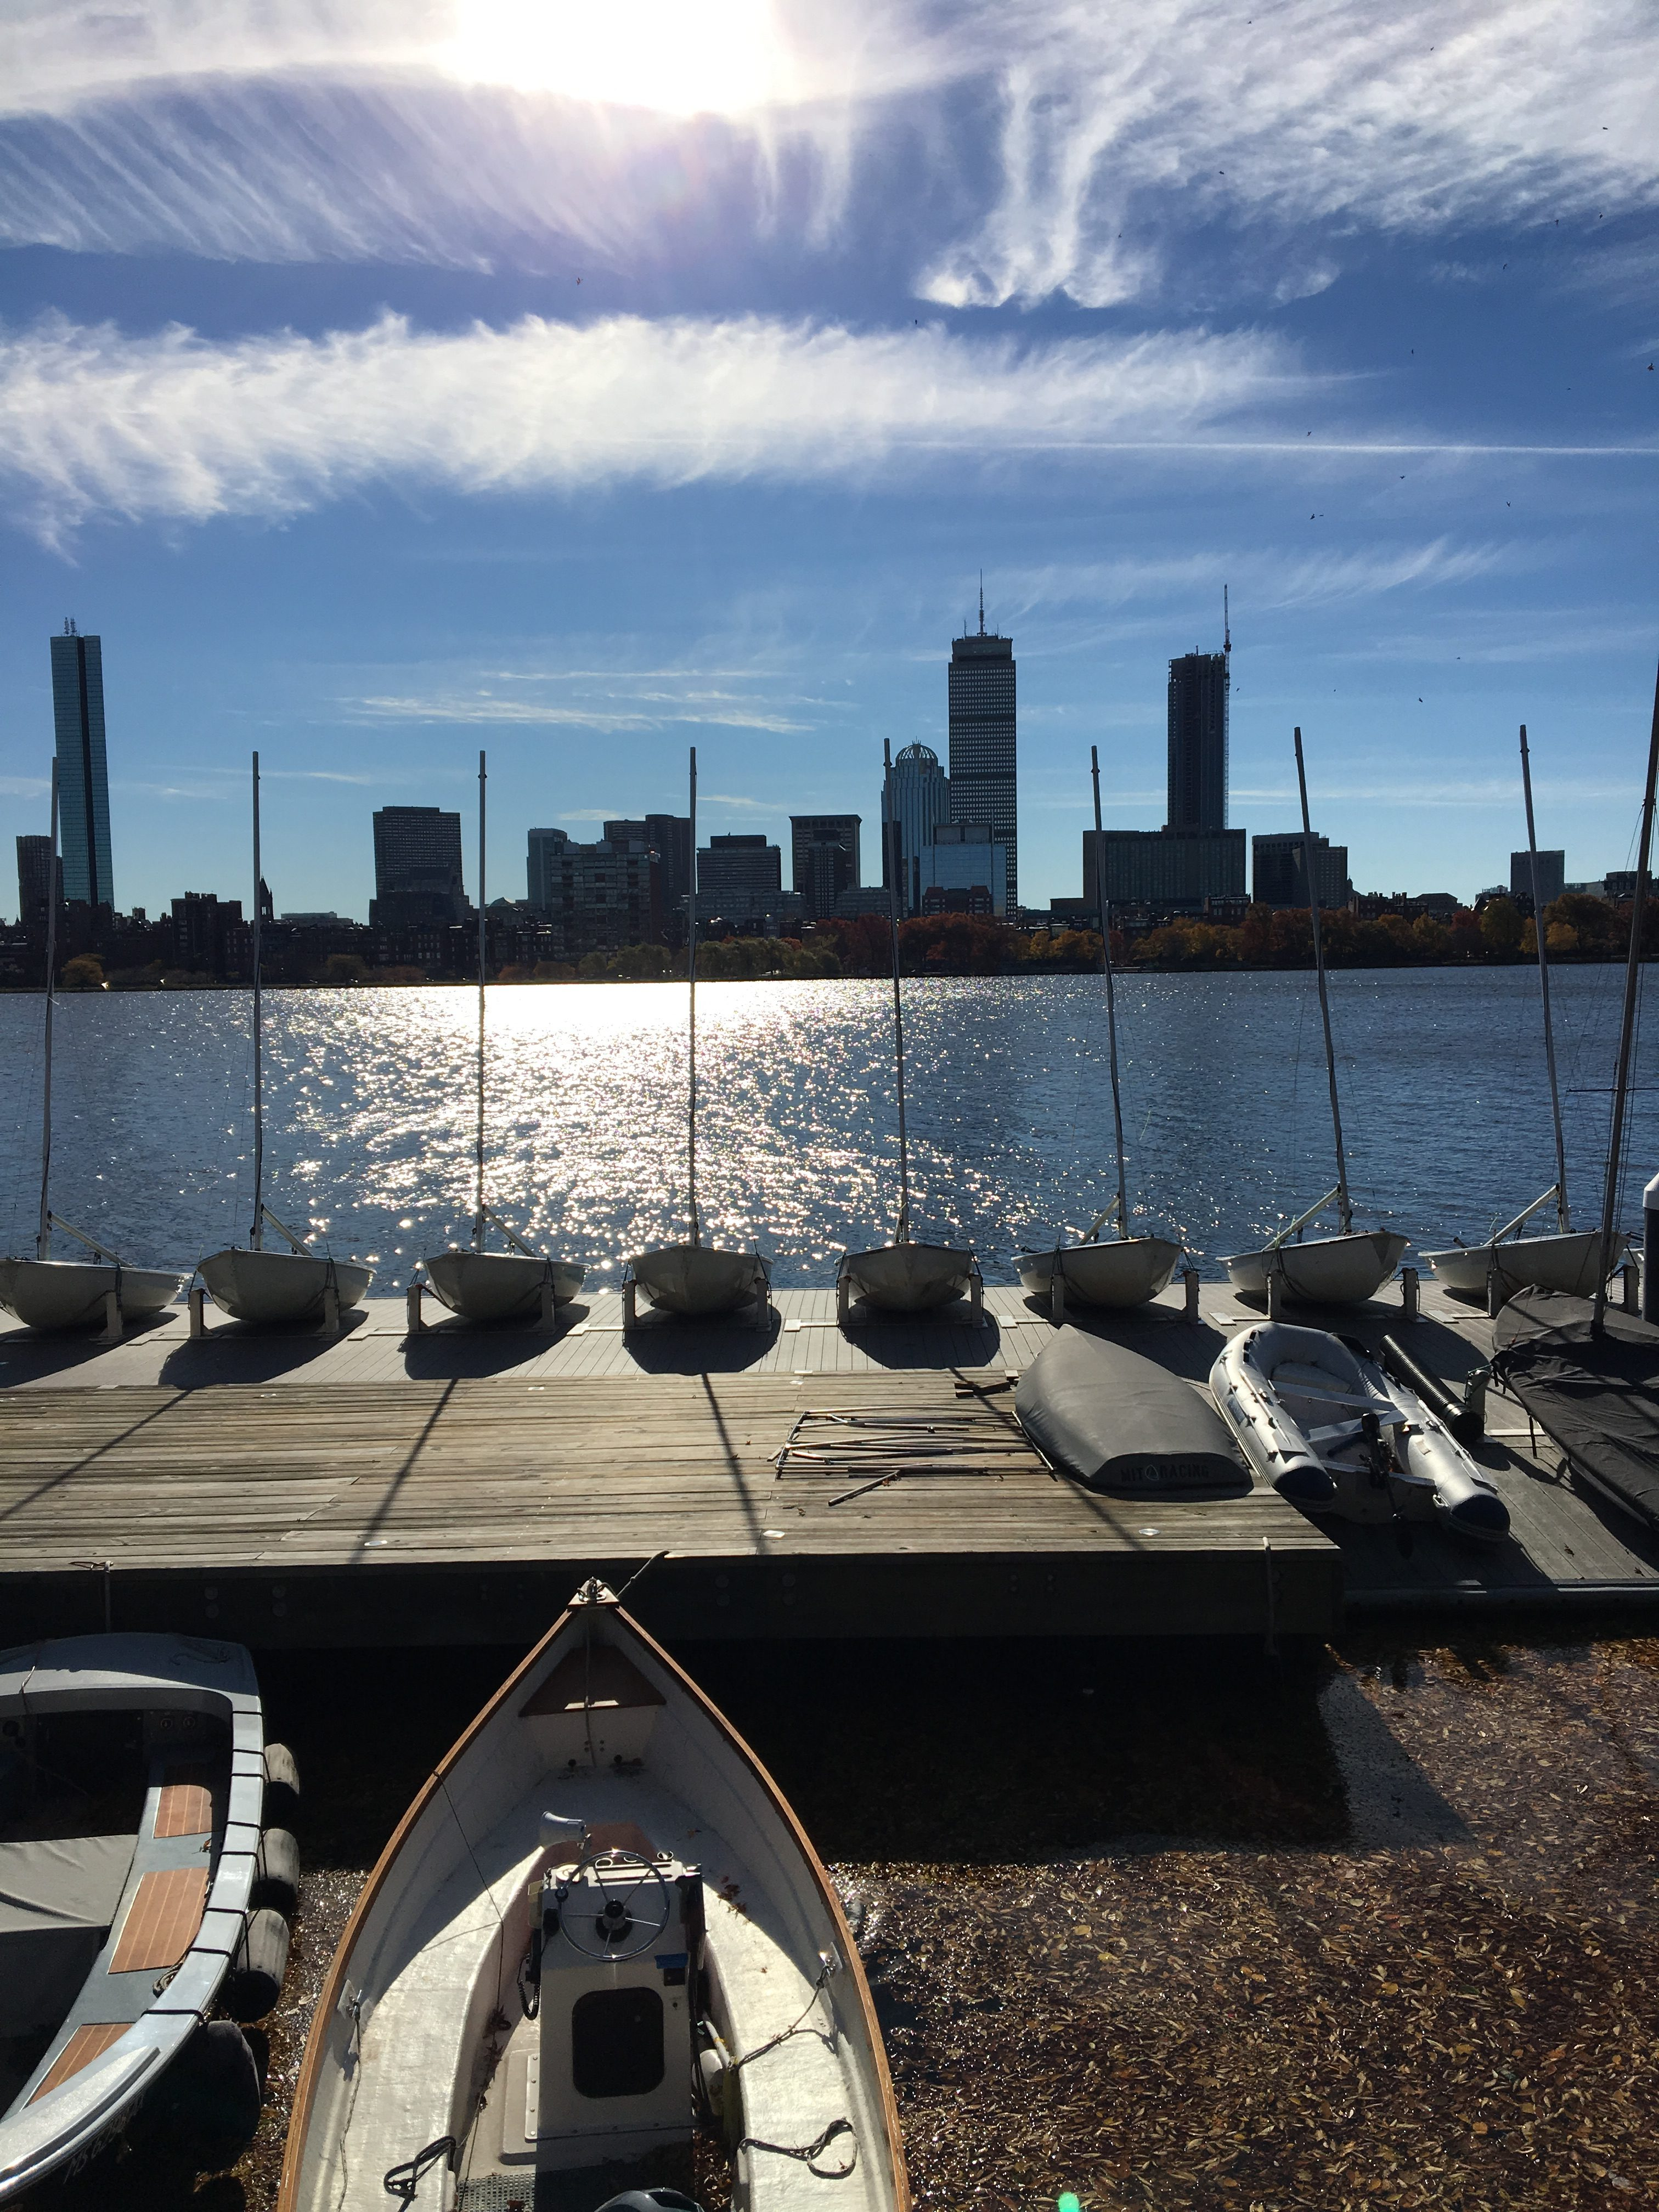 A view from next to the river. Docked rowboats are in the foreground, the blue river with sunlit ripples in the middleground, and the Boston skyline and fluffy clouds in the background.